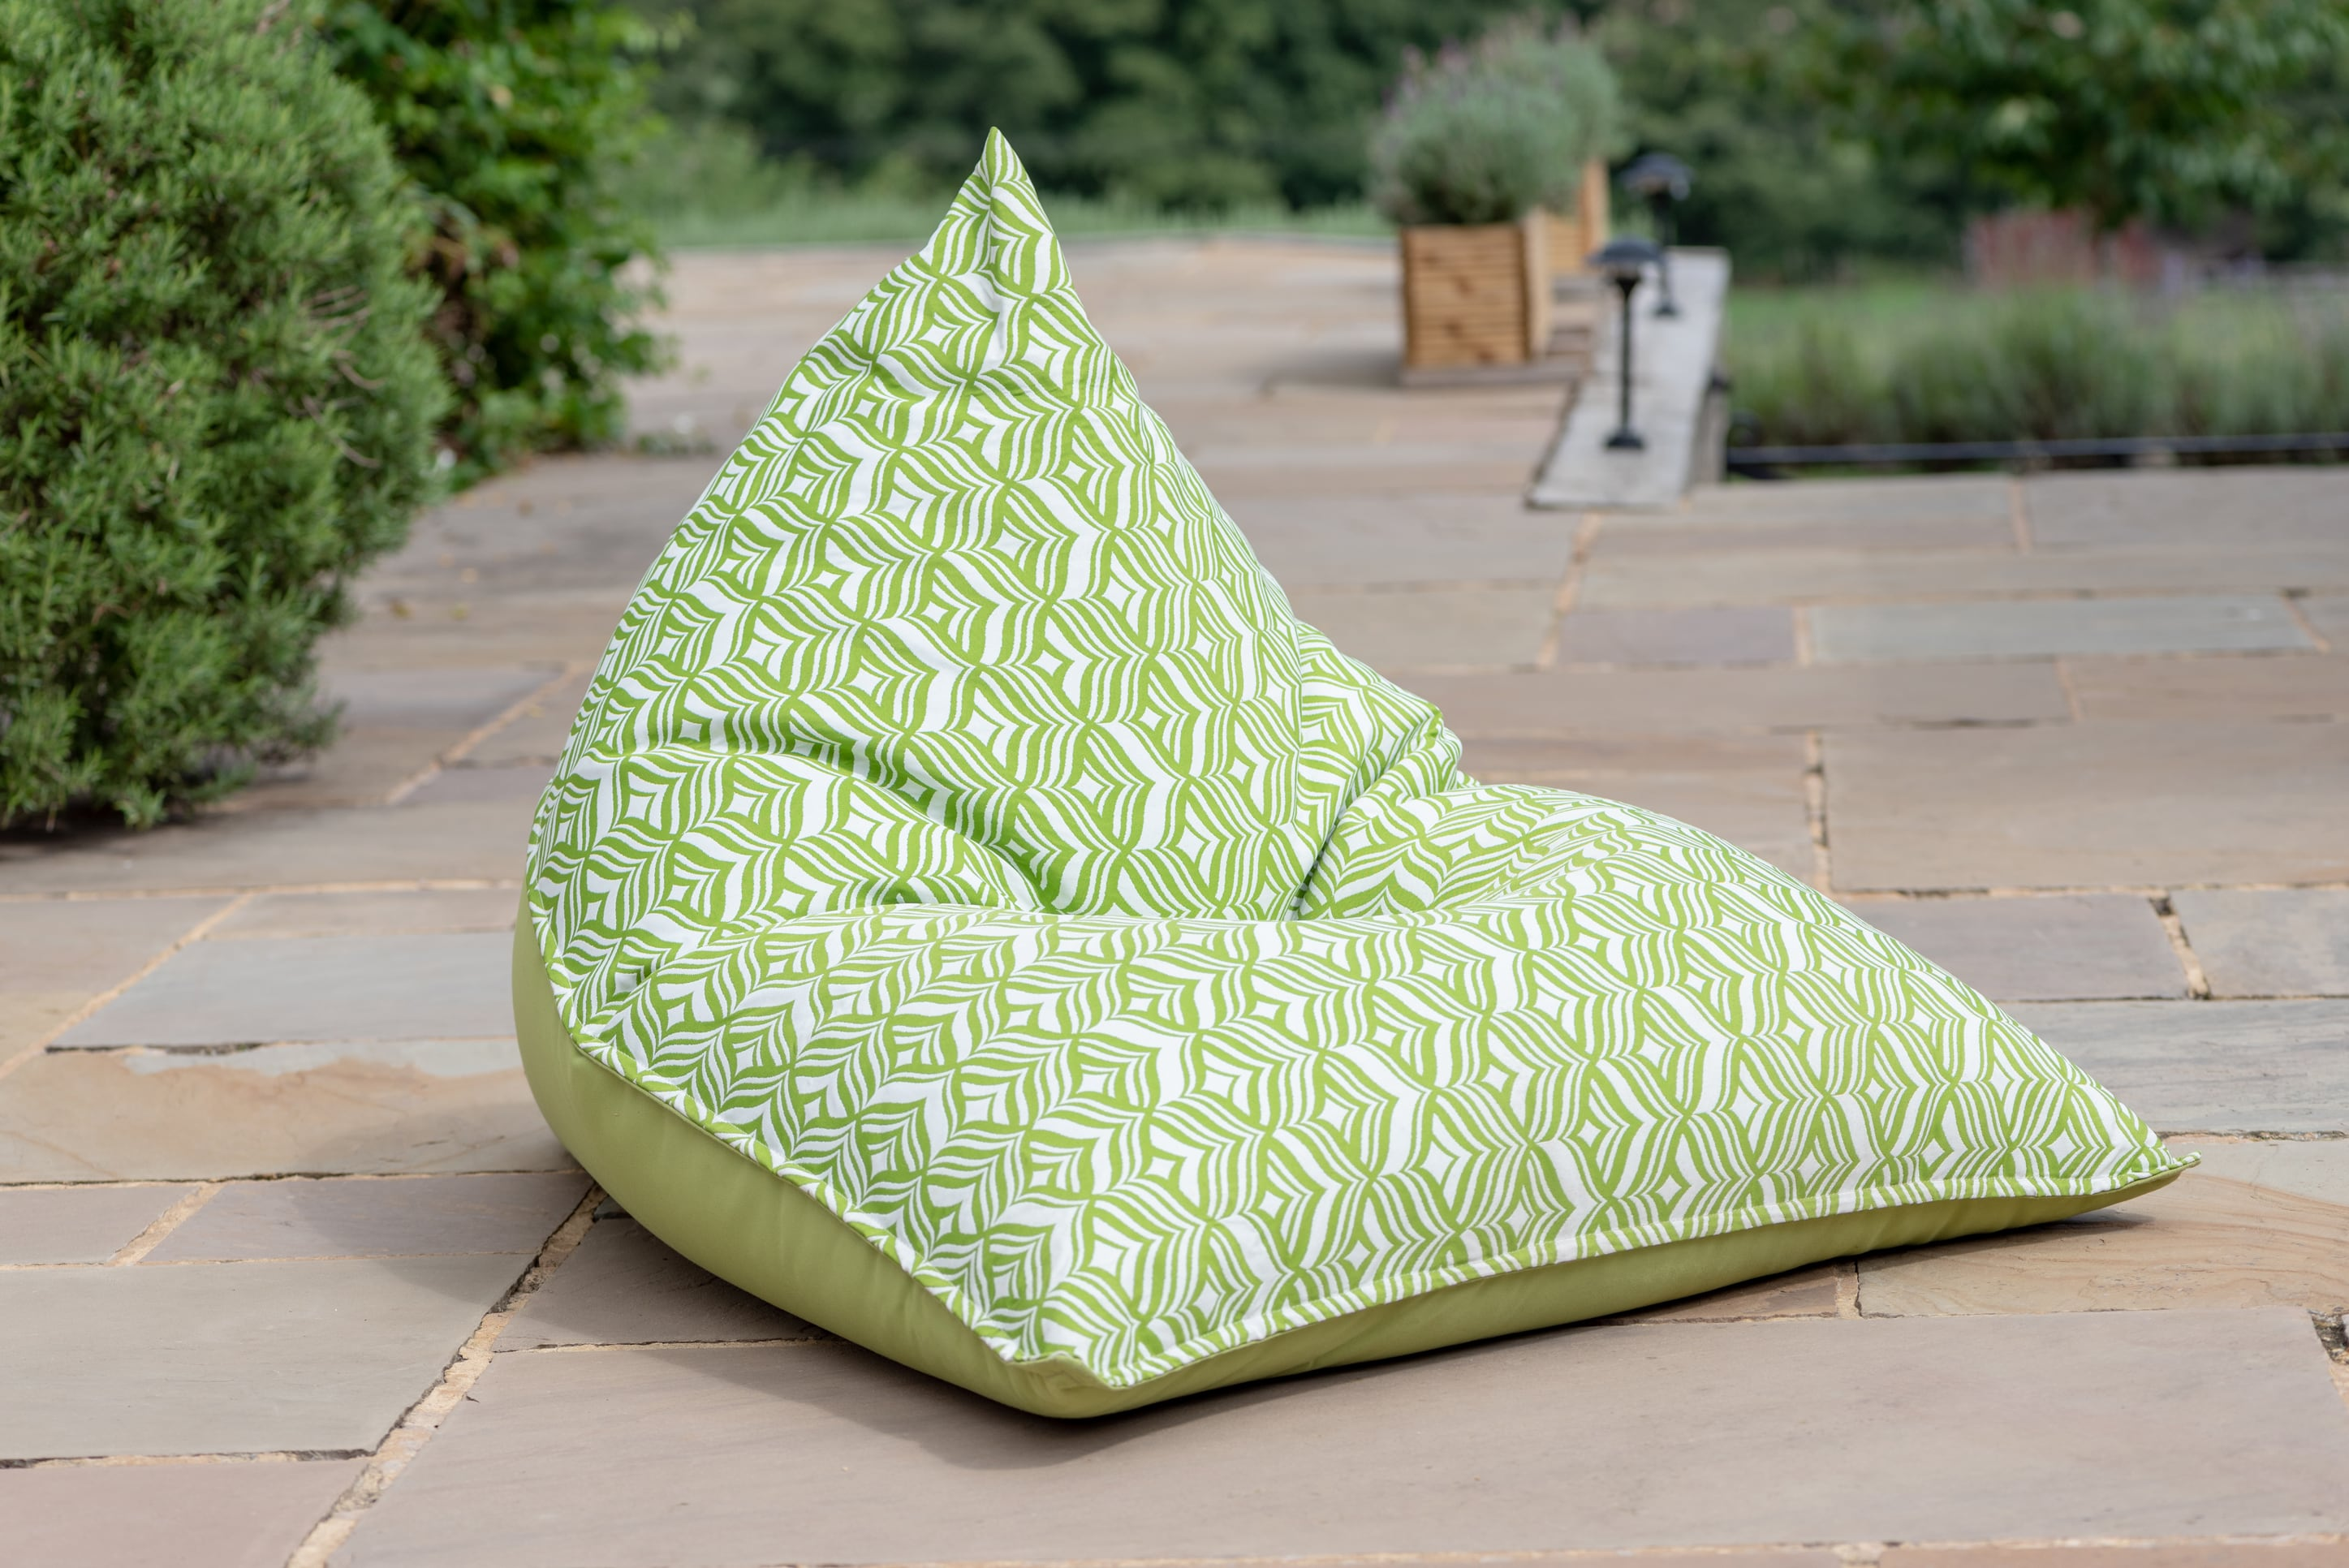 Armadillo Sun bean bag chair in green and white tulip design